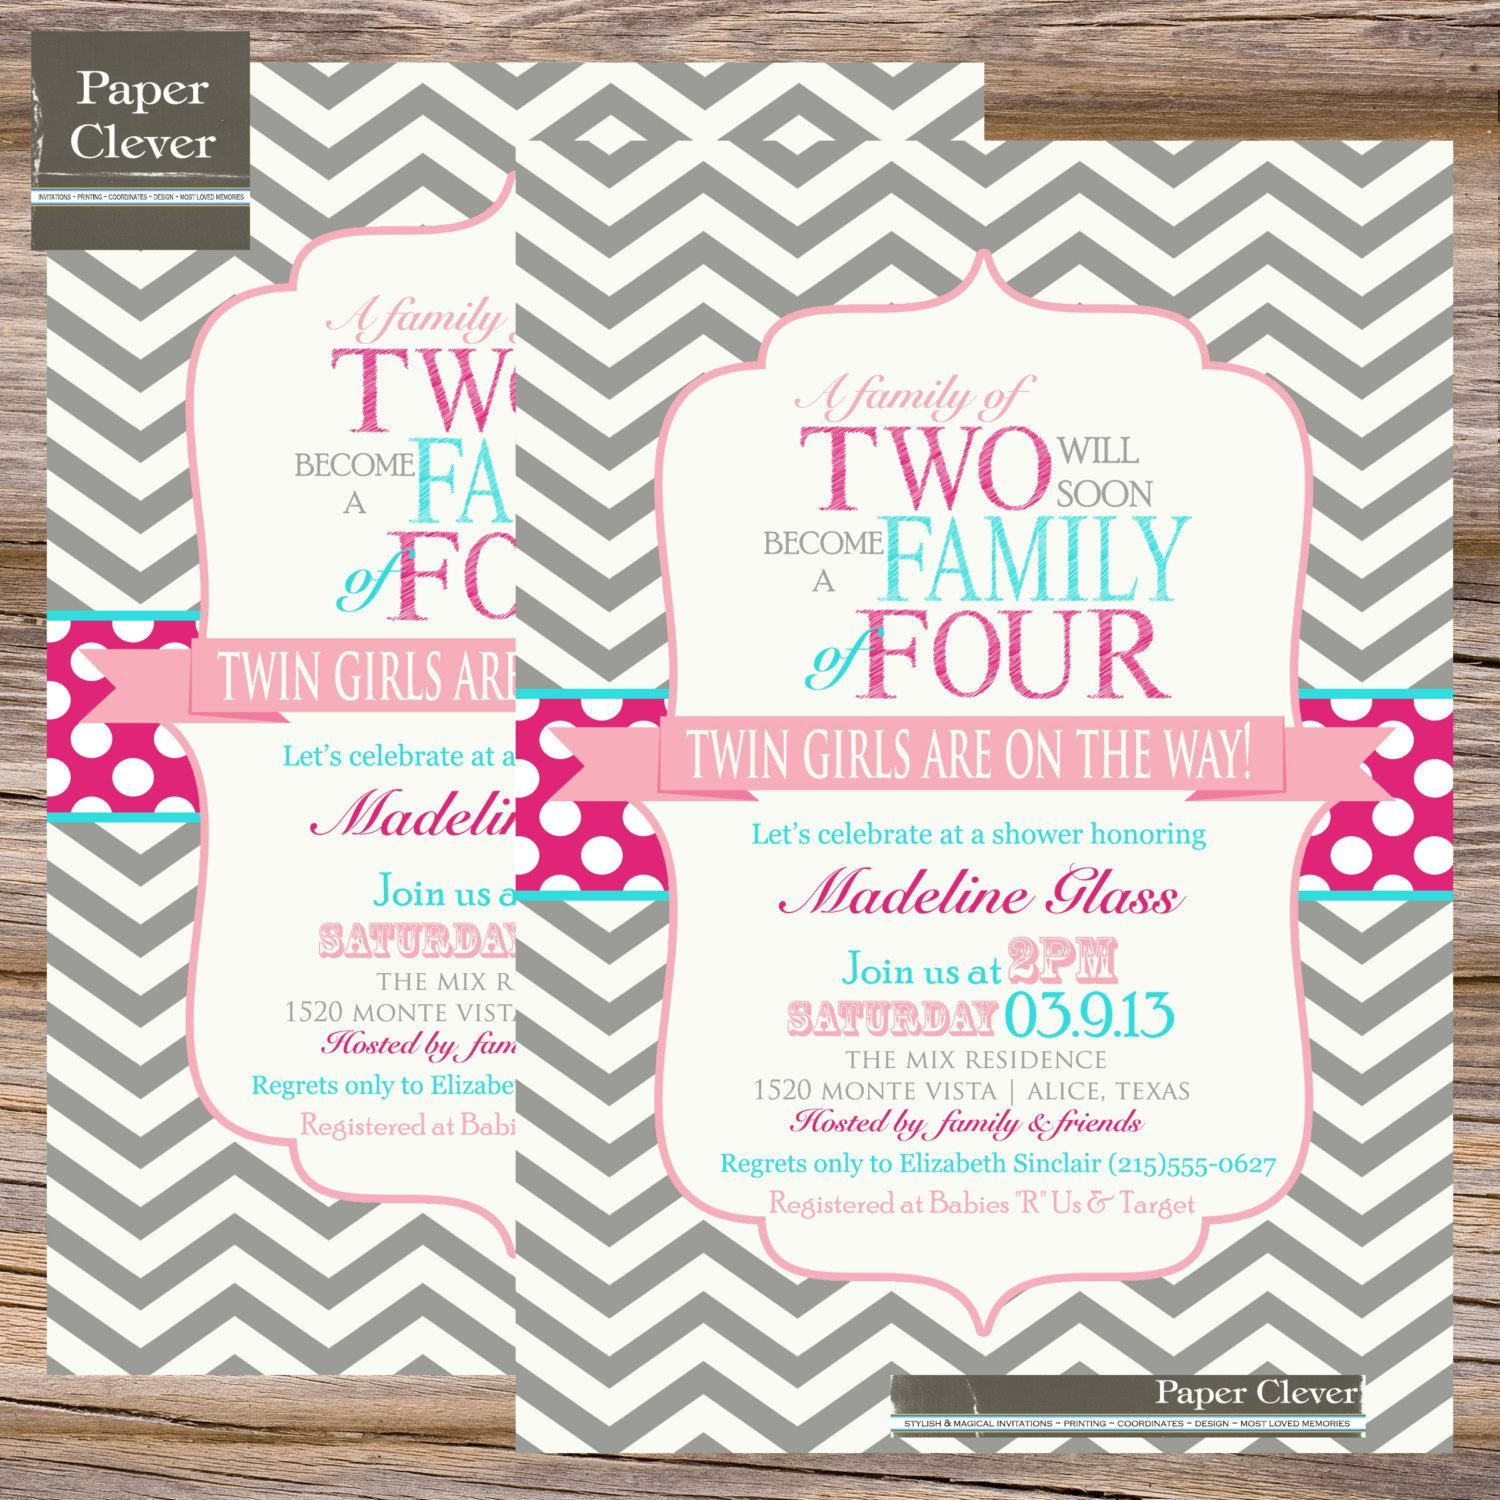 Couples baby shower invitation pinteres couples baby shower invitation more filmwisefo Gallery